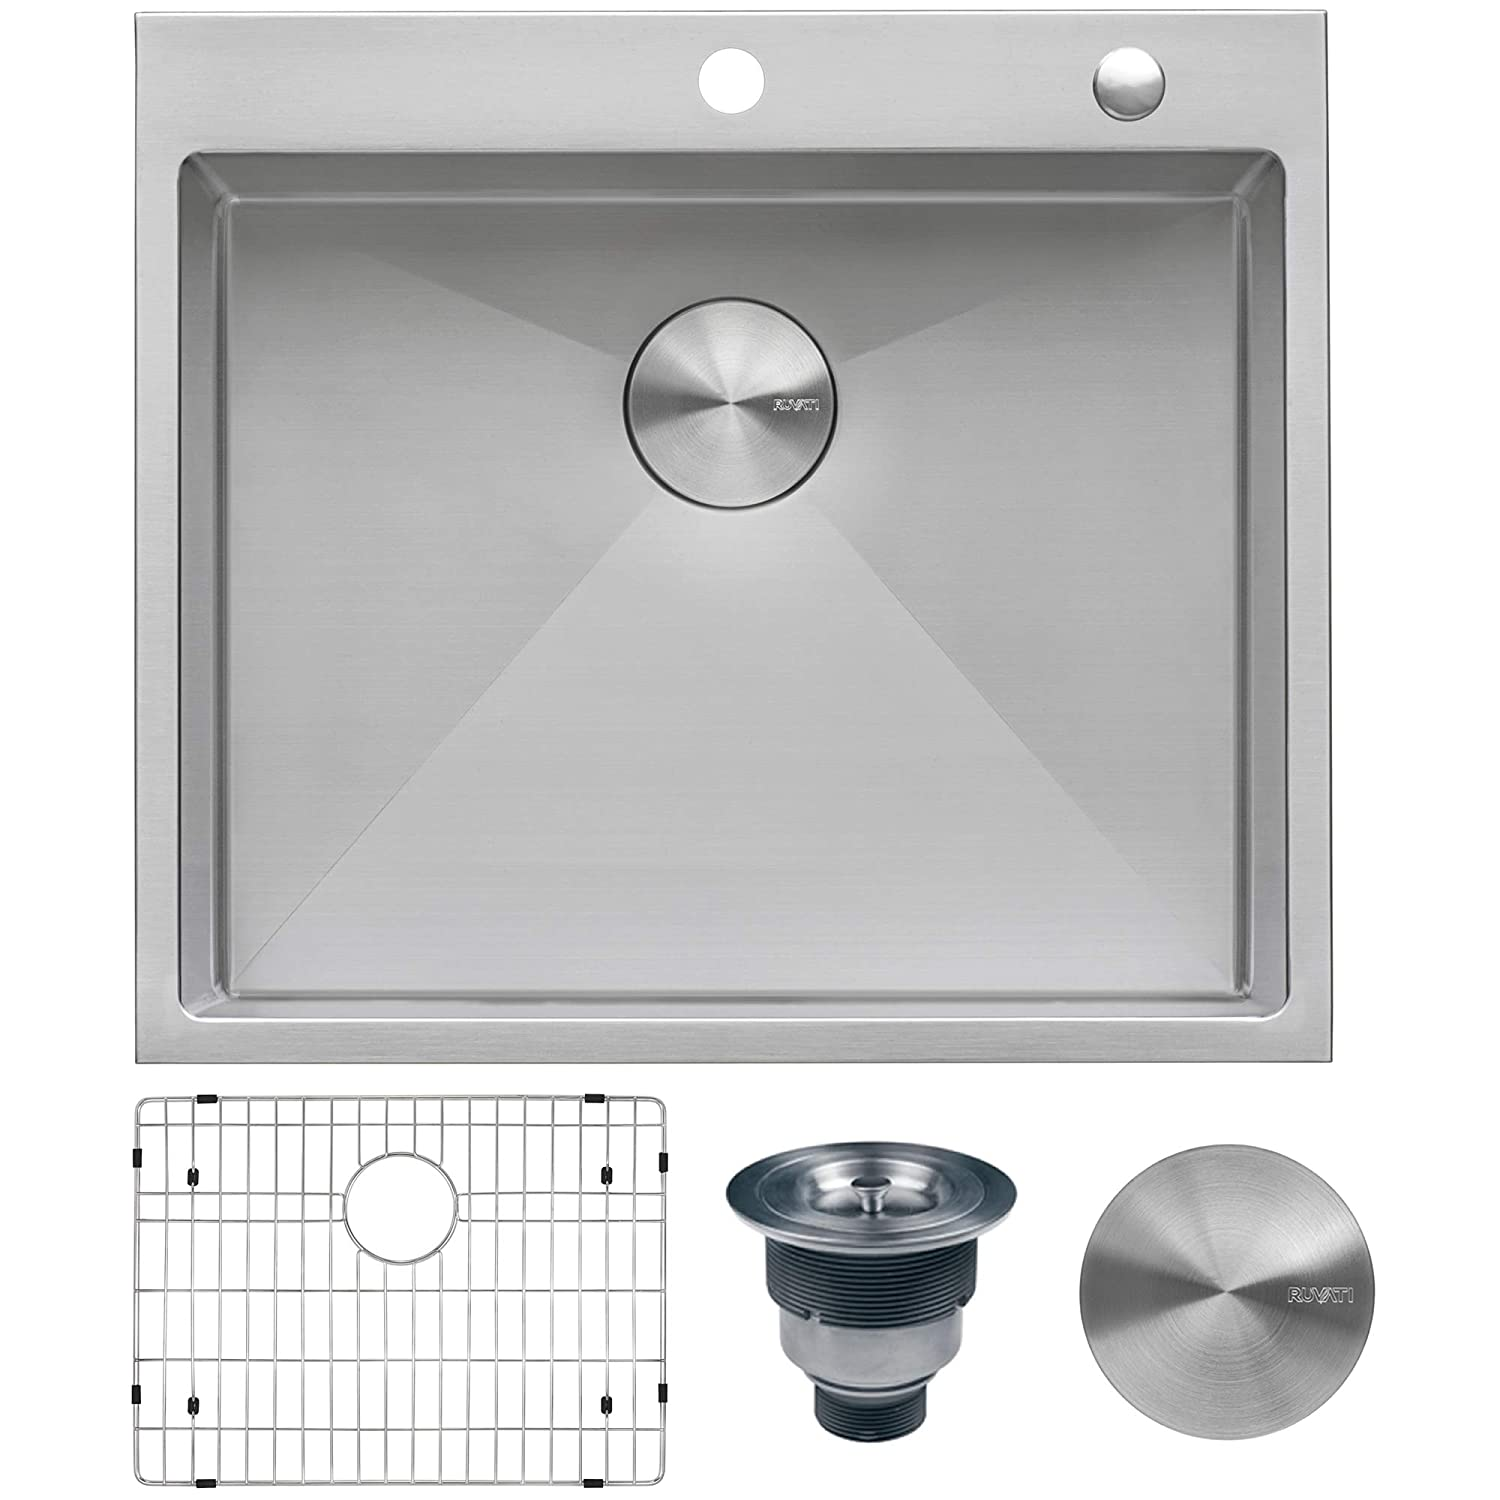 Ruvati 25-inch Drop-in Tight Radius Topmount 16 Gauge Stainless Steel Kitchen Sink Single Bowl - RVH8007